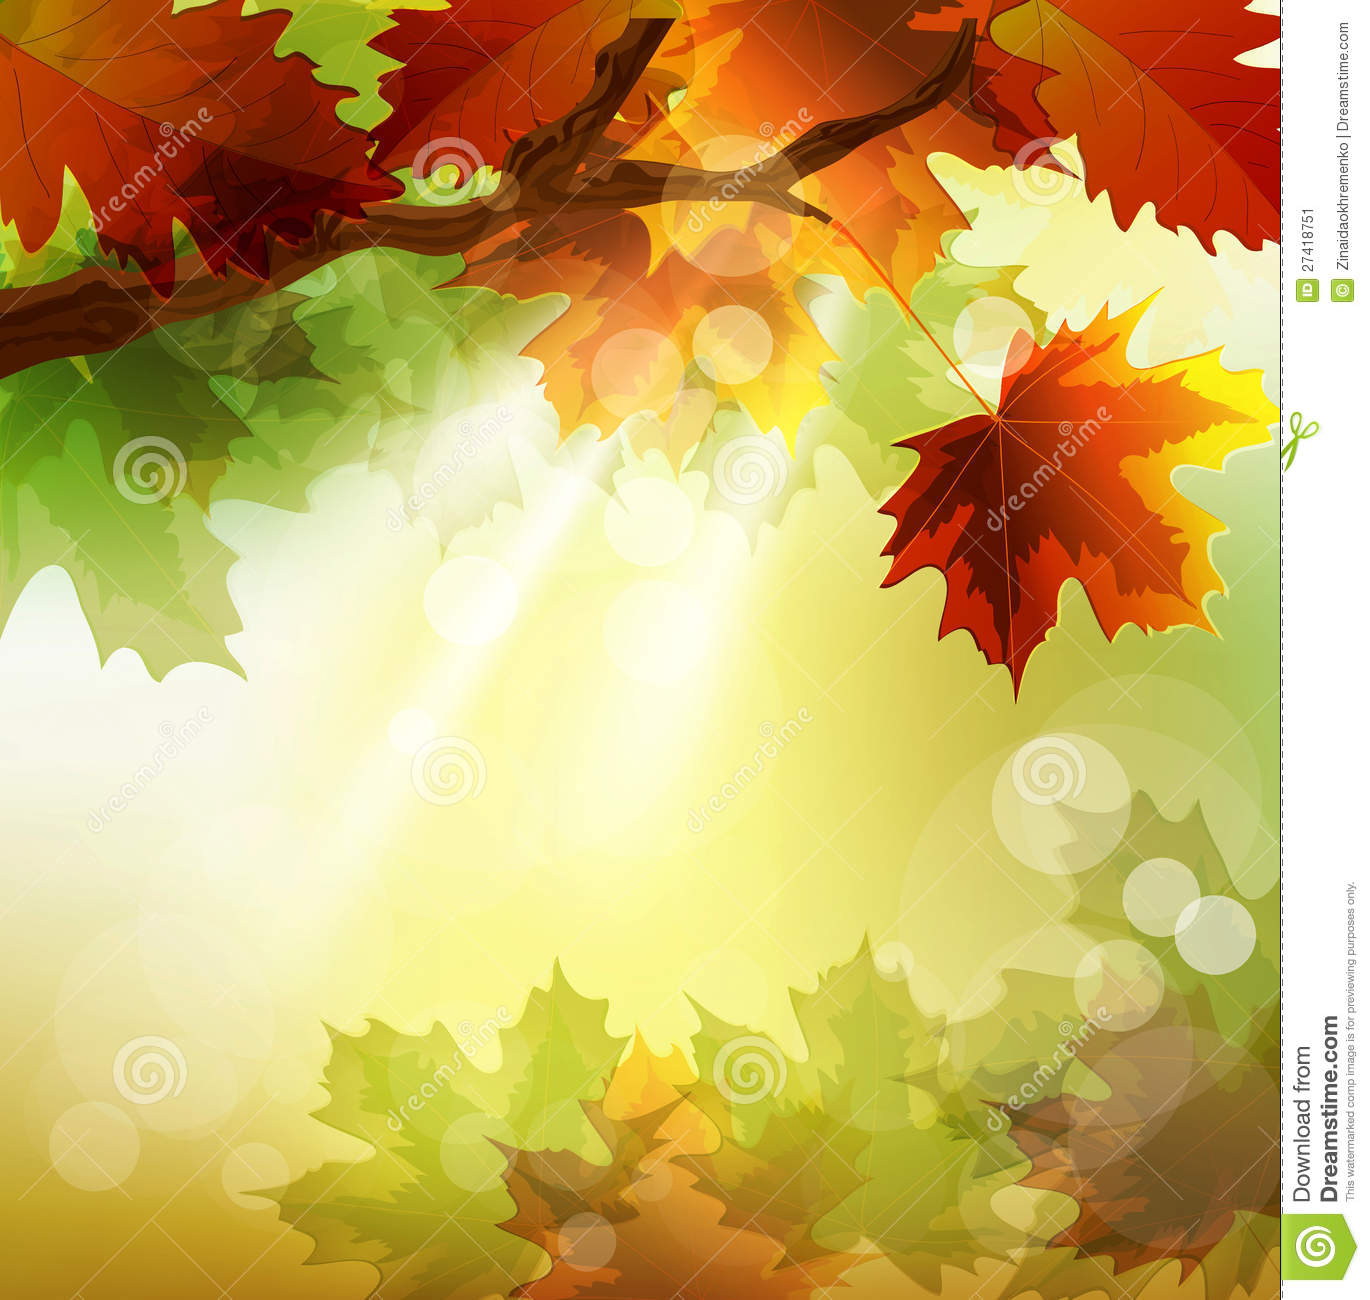 Fall Themed Wallpapers Cartoon Vector Autumn Background With Maple Leaf Stock Image